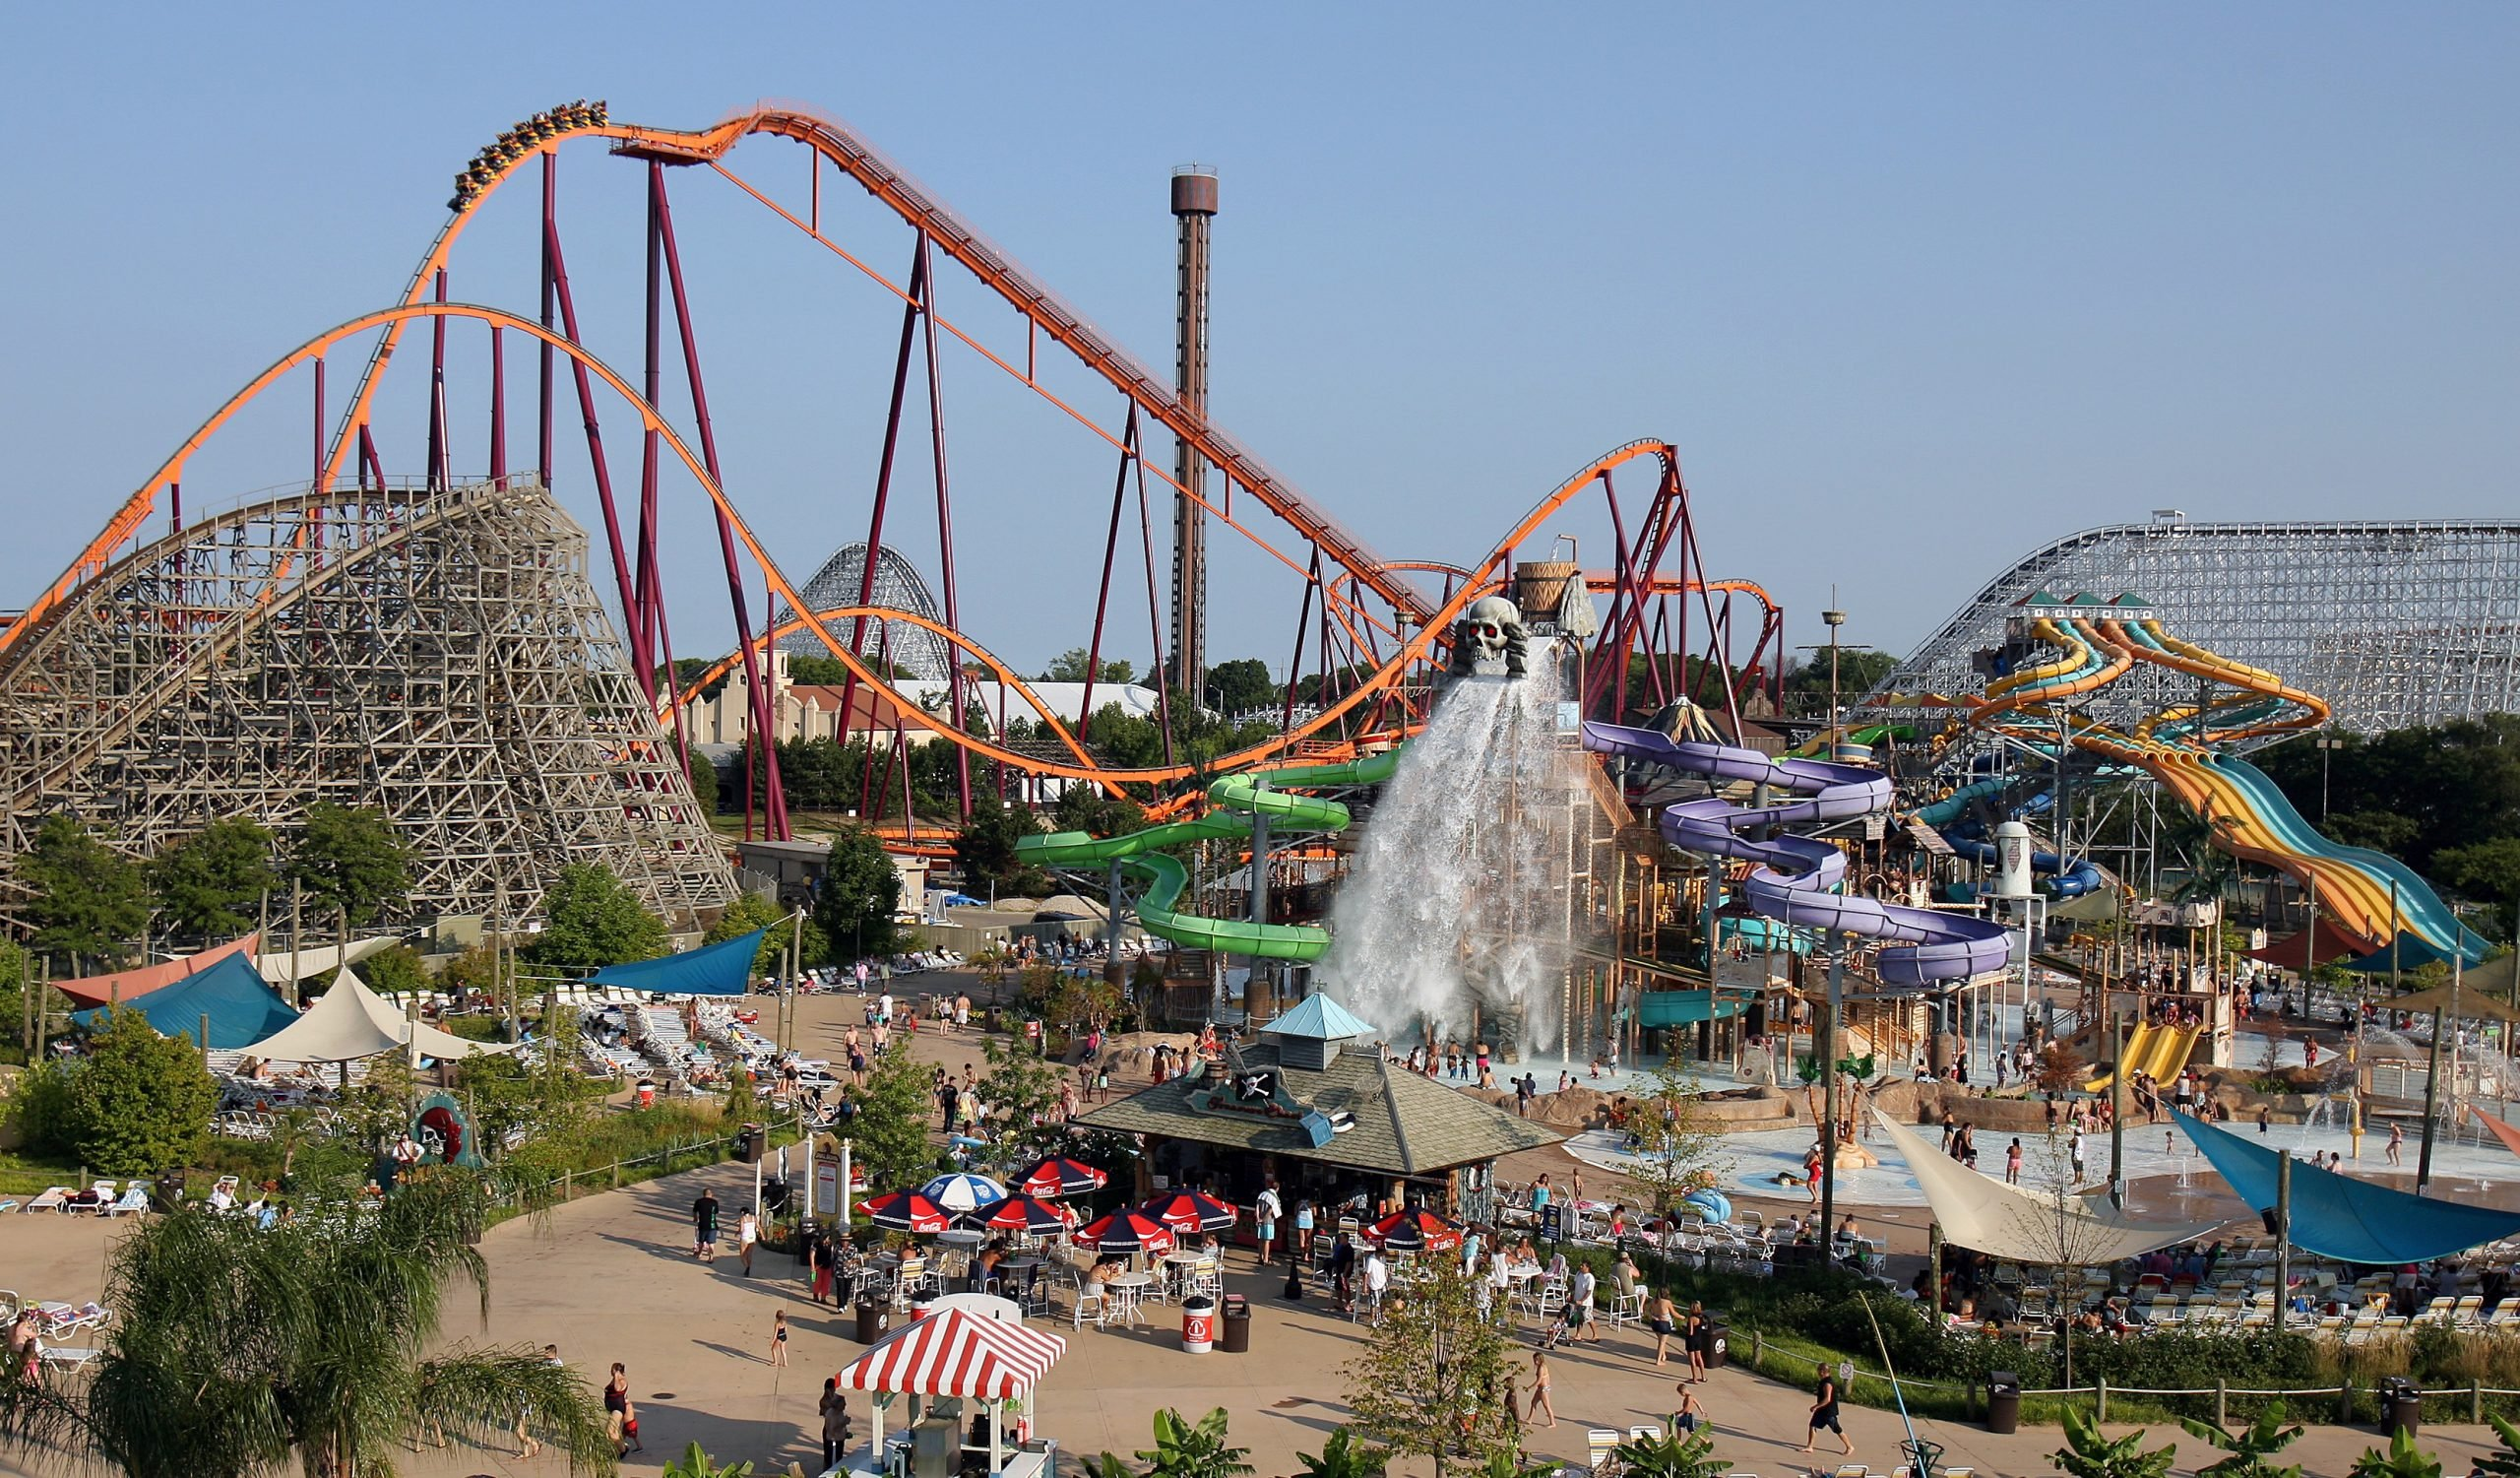 Six Flags (SIX) Is An Industry-Leading Re-Opening Play With Potential For Upside Surprise